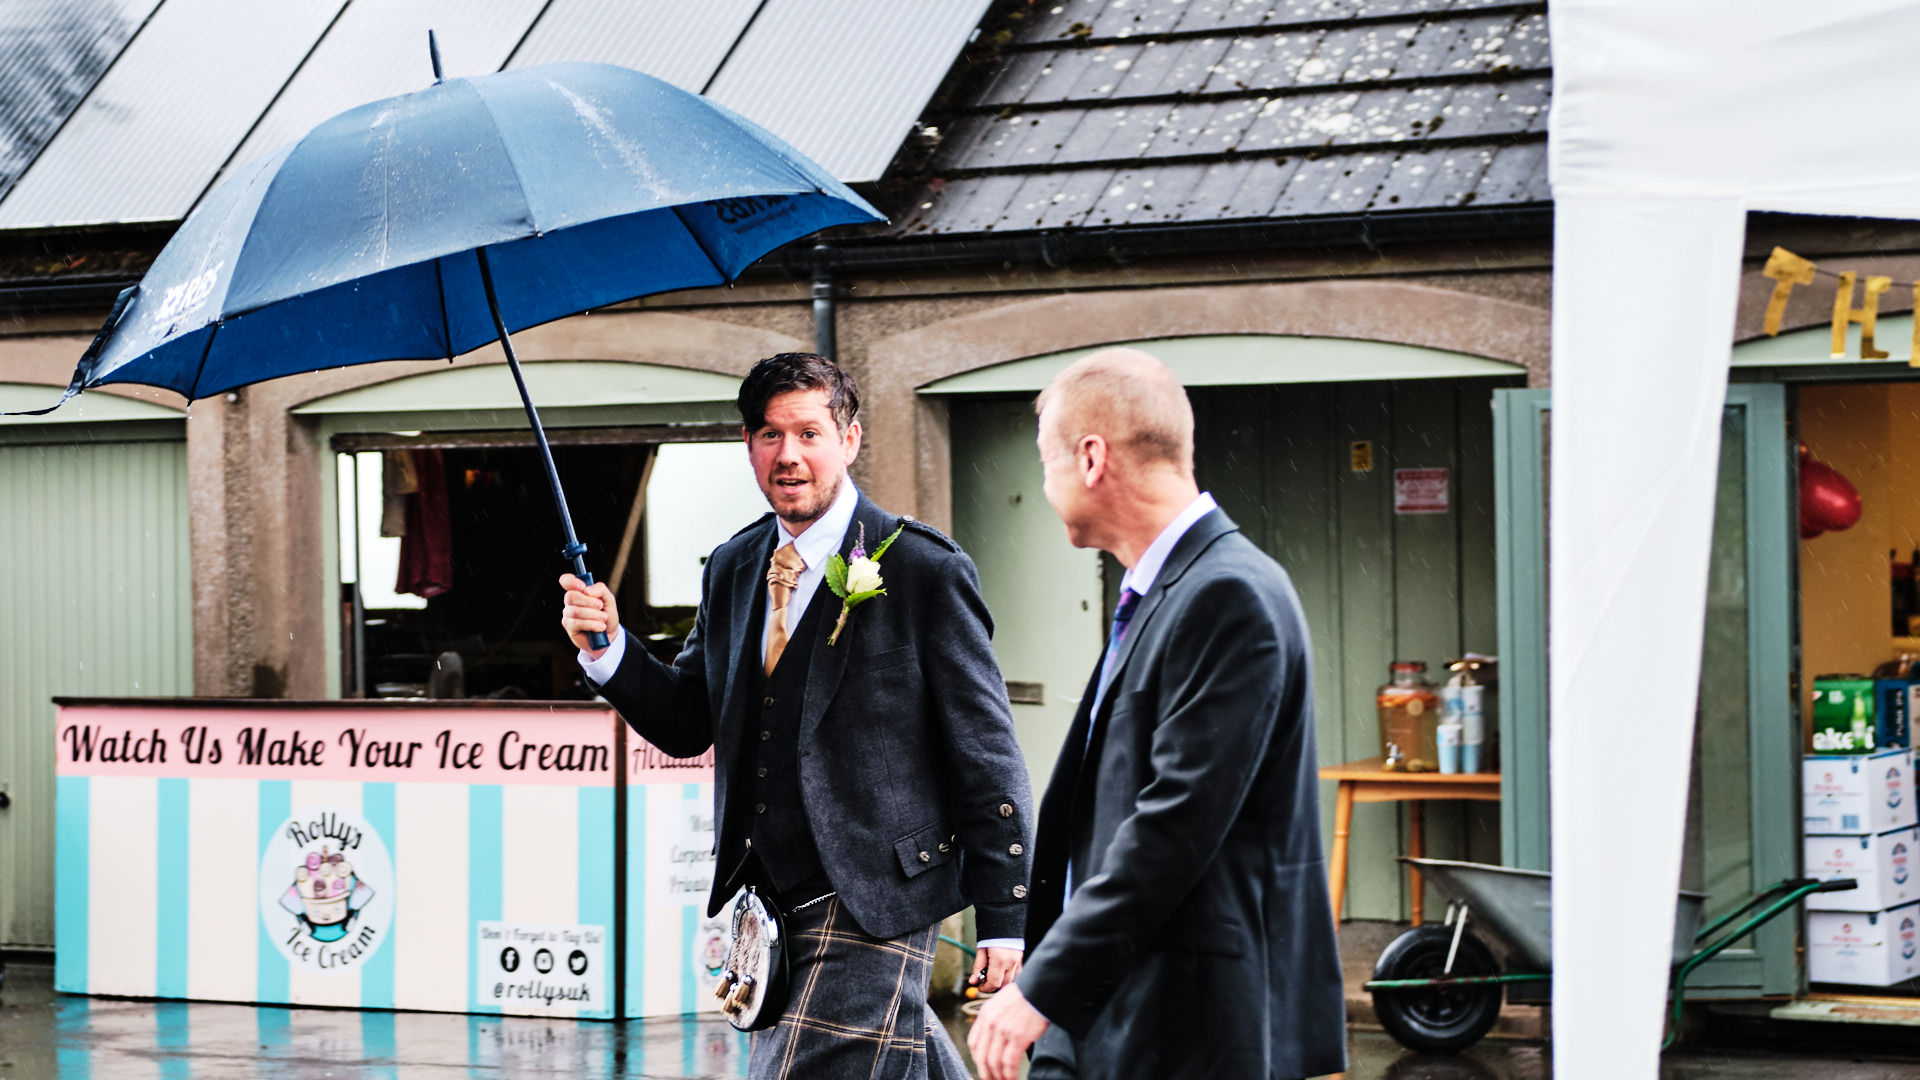 colour photograph of the bestman holding an umbrella just before the start of a wedding